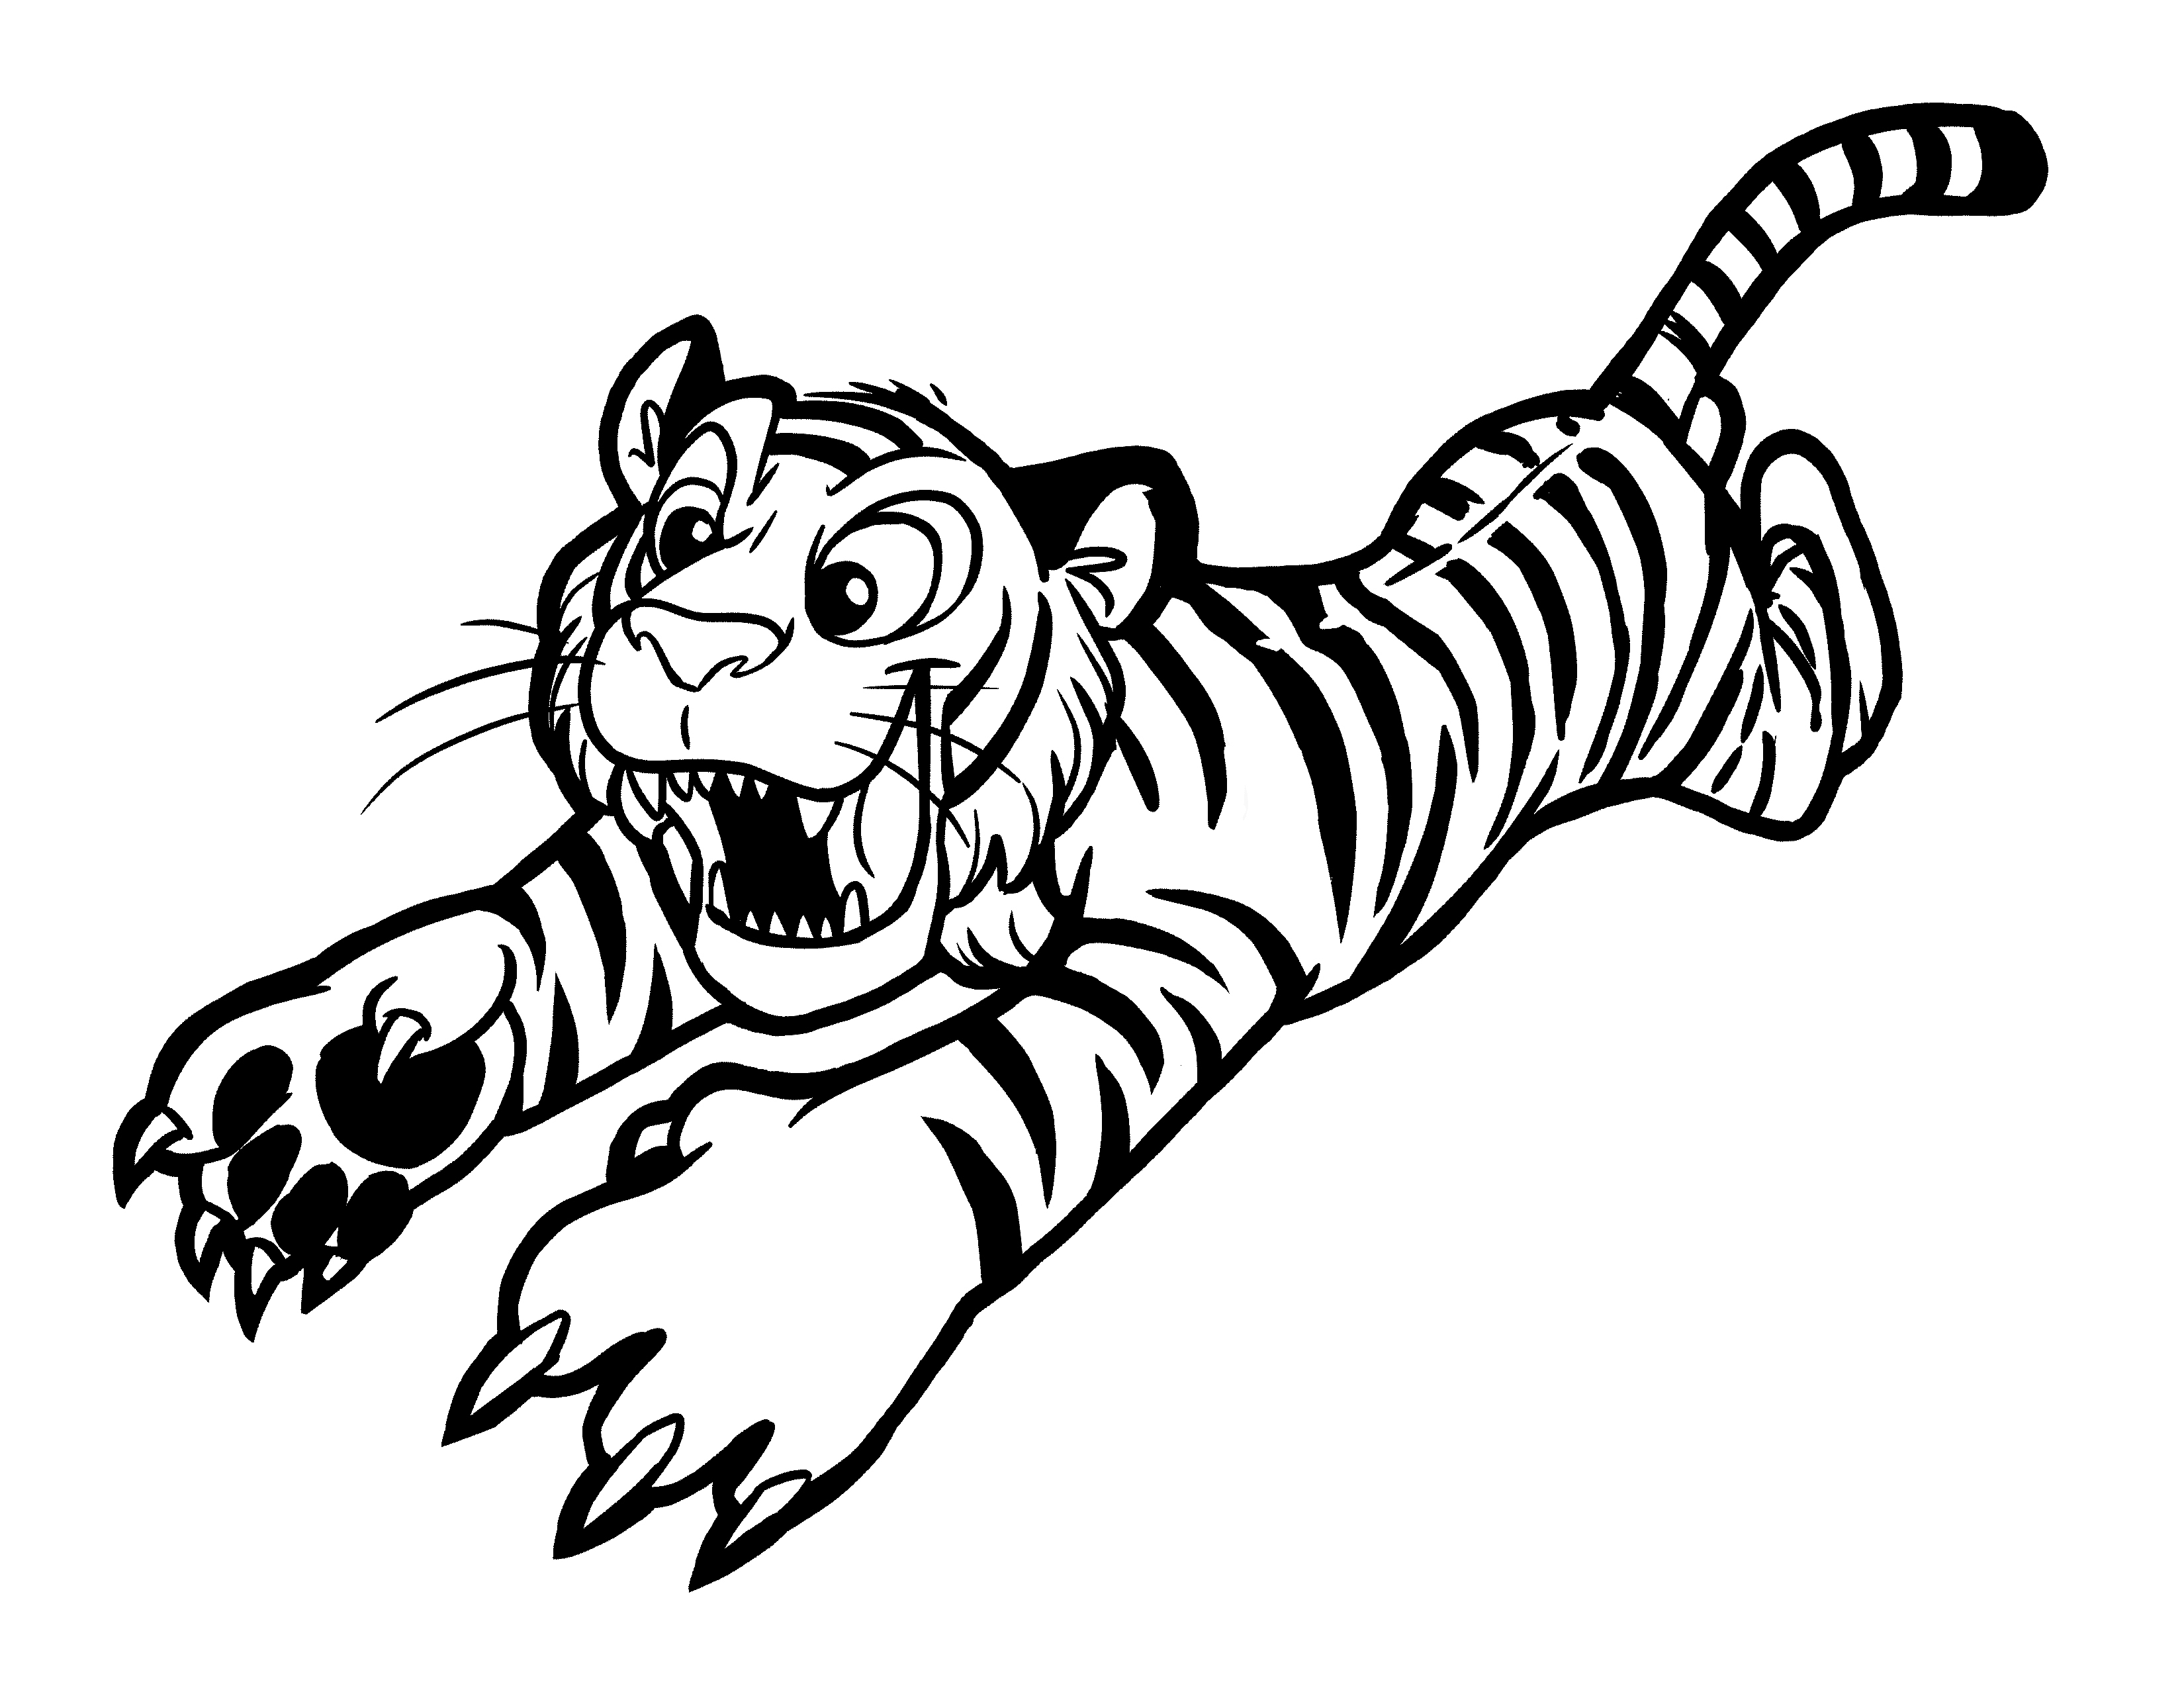 Clemson Coloring Pages At Getdrawings